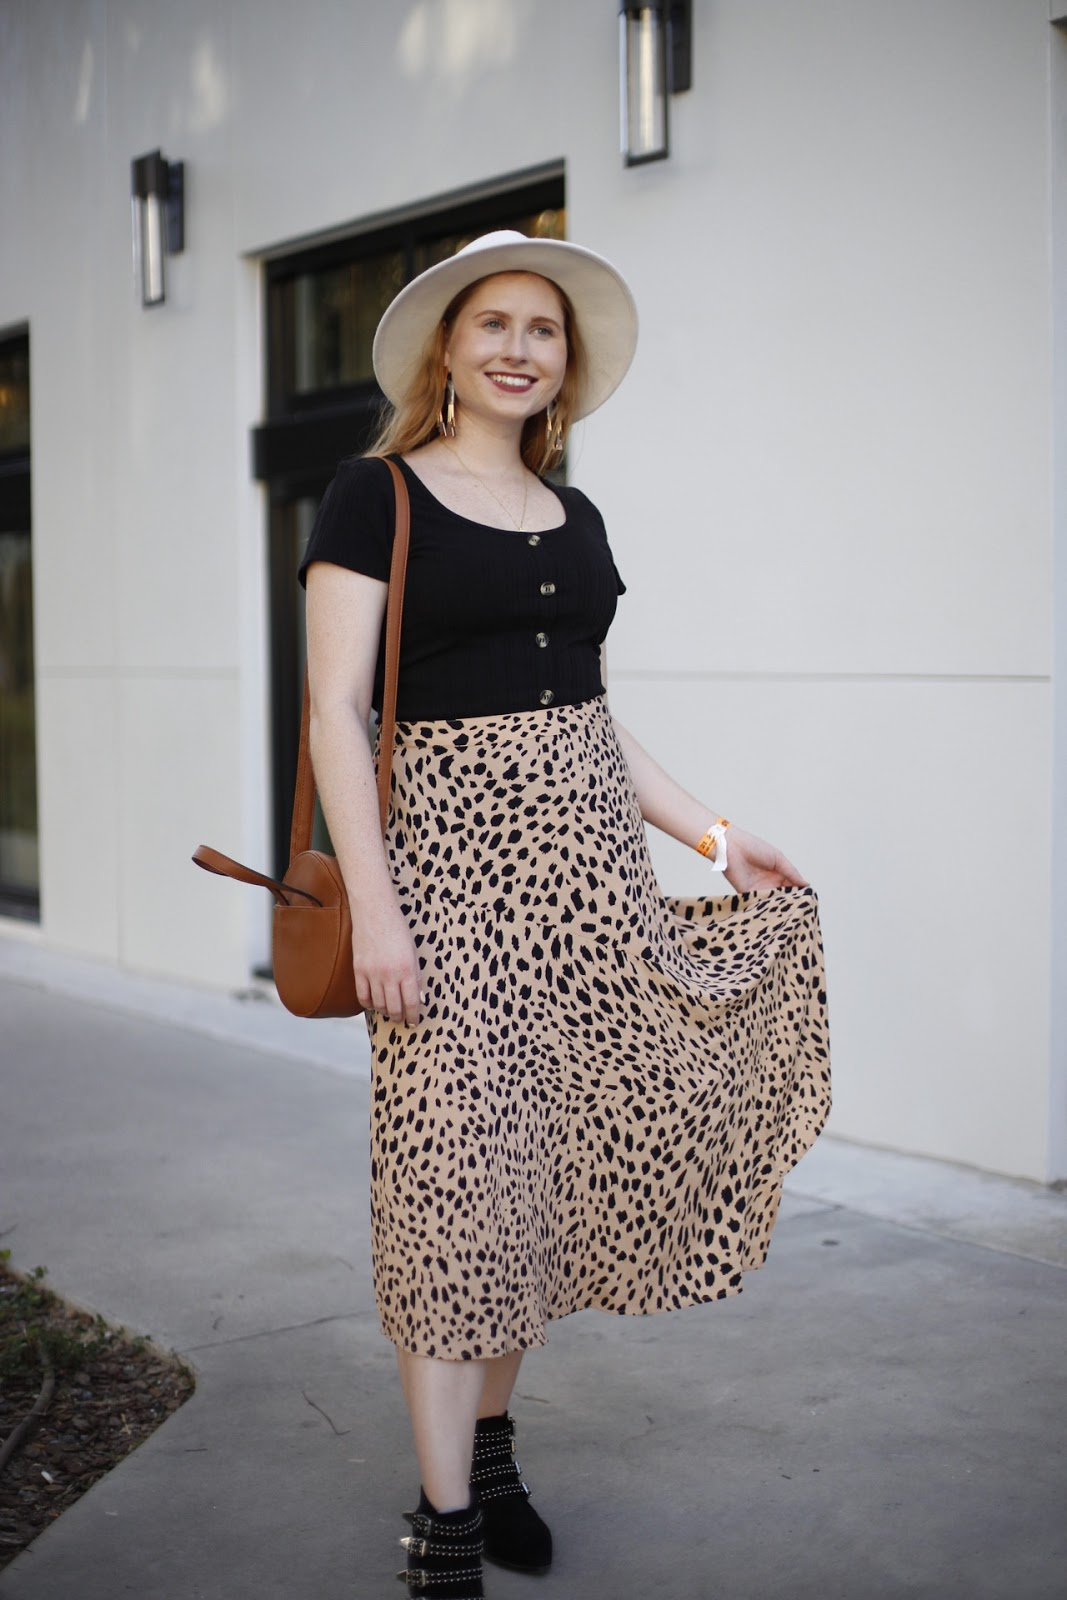 The Leopard Midi Skirt I Can't Stop Wearing for Fall